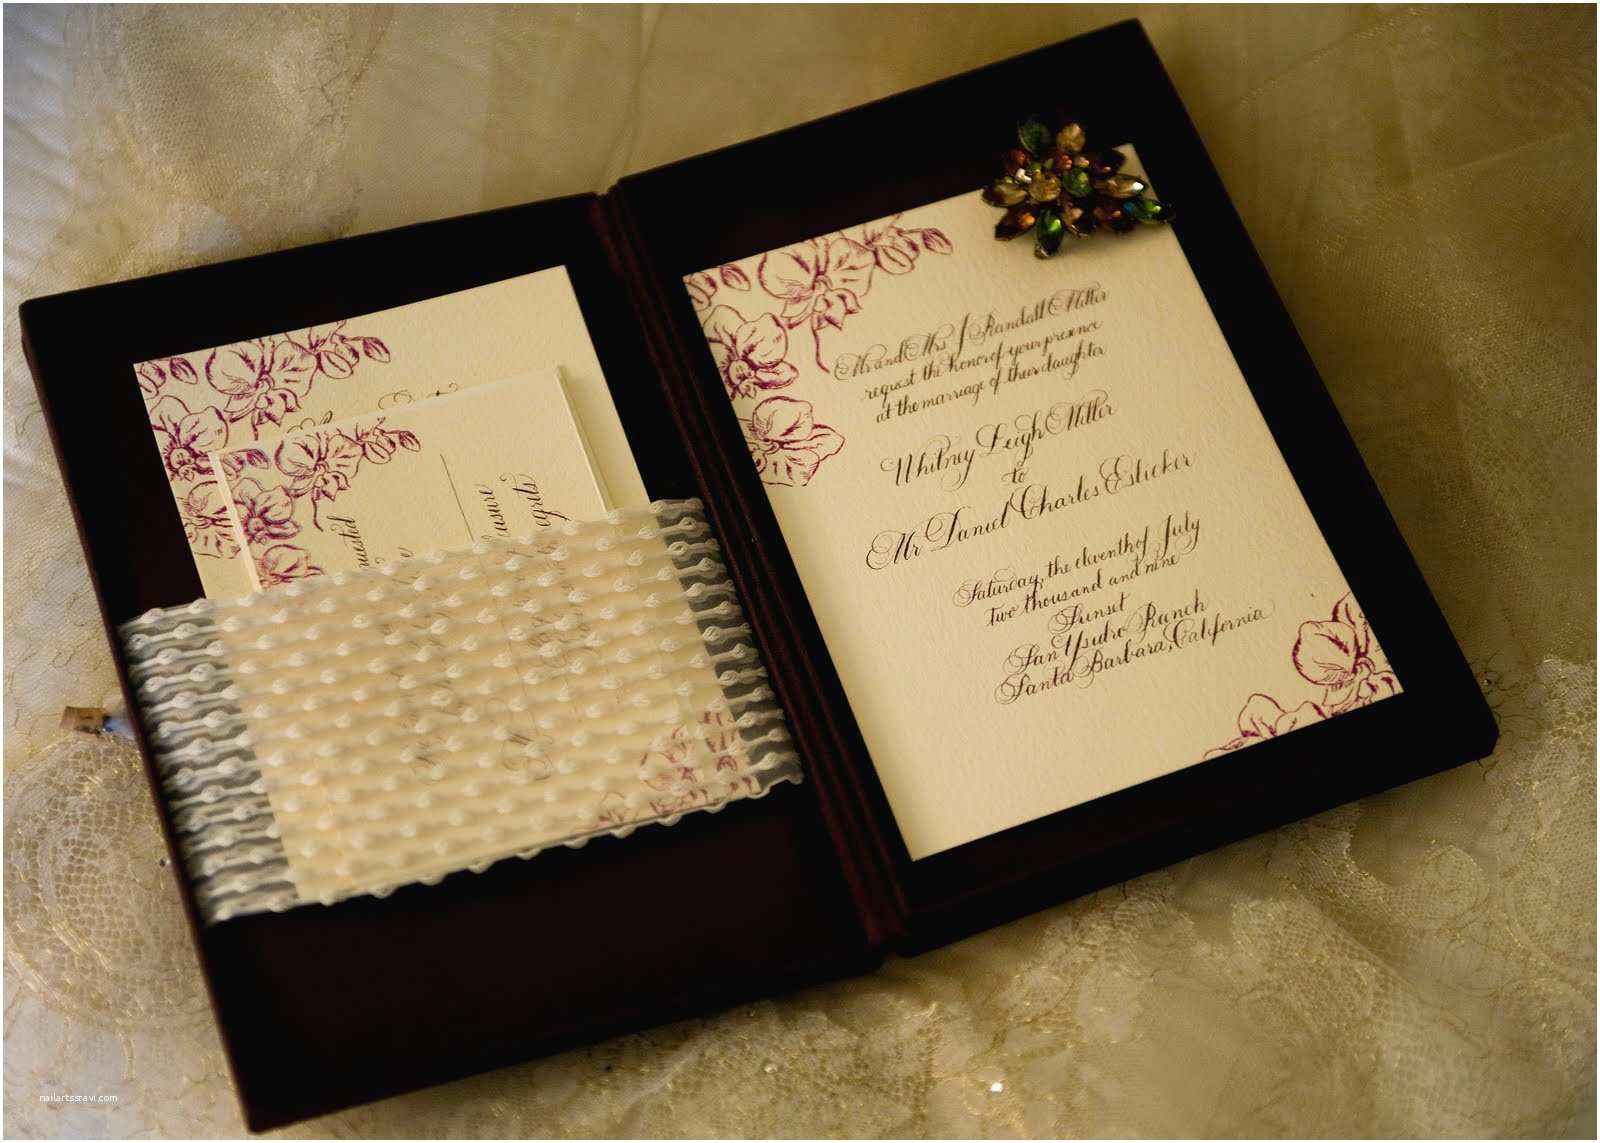 Wedding Invitation Wording together with their Parents Wedding Invitation Wording to Her with their Parents